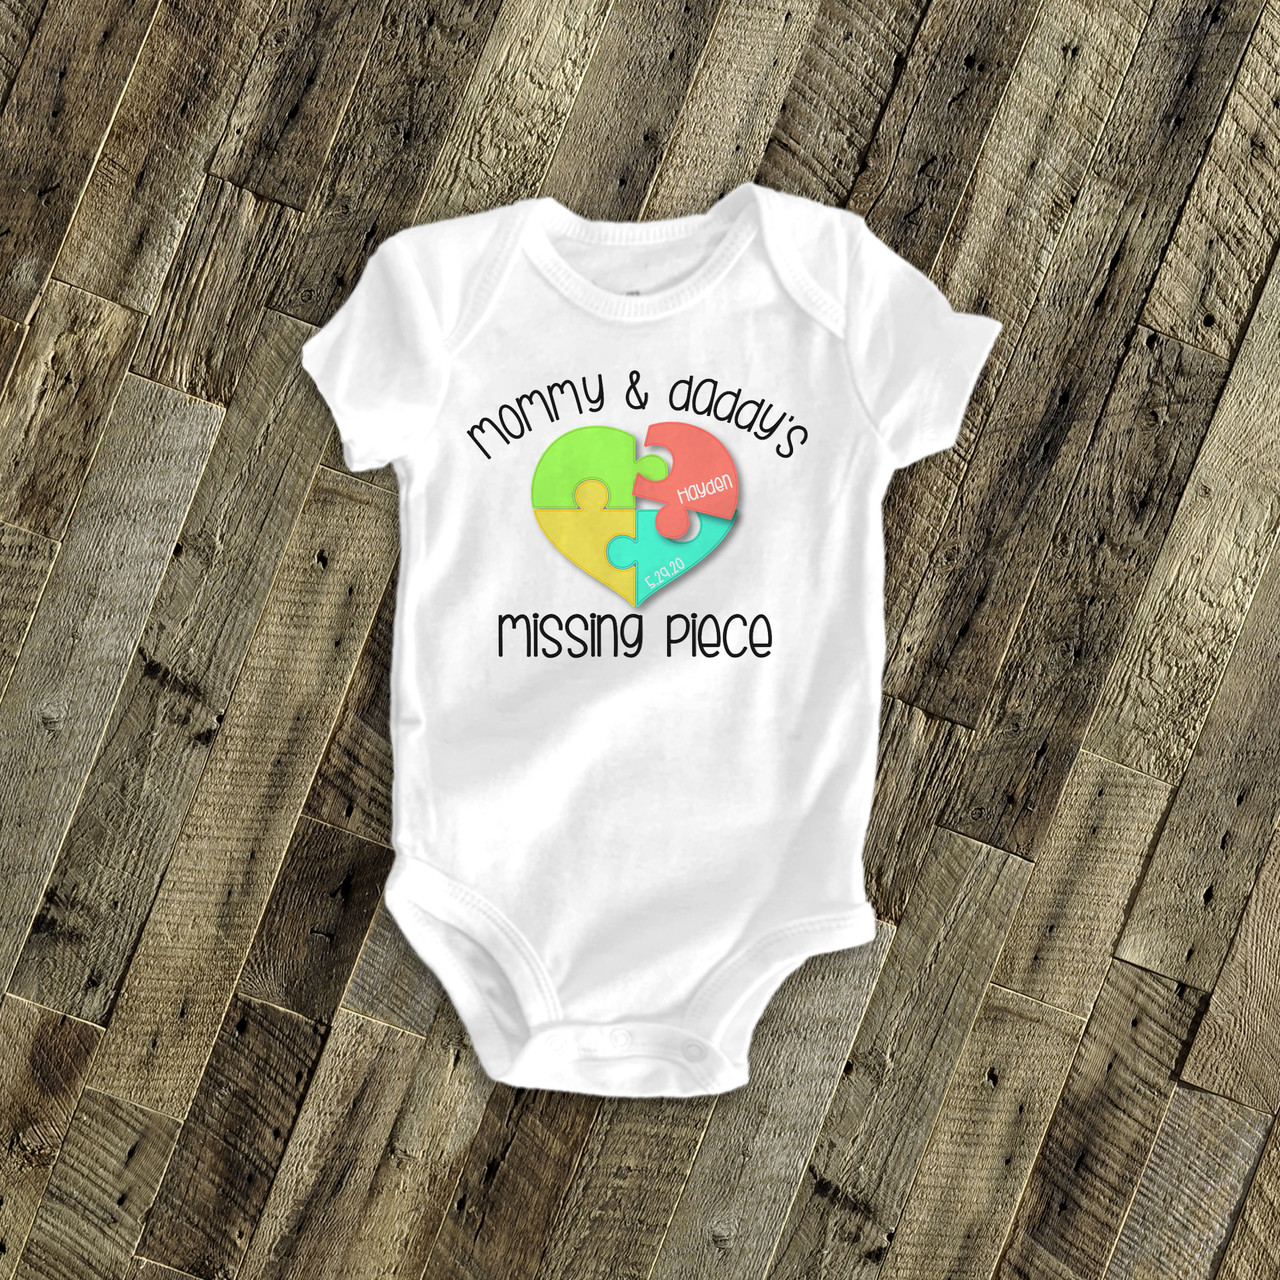 NEW Personalized 1st First Birthday Puppy Dog Baby Toddler One Piece Shirt Body Suit